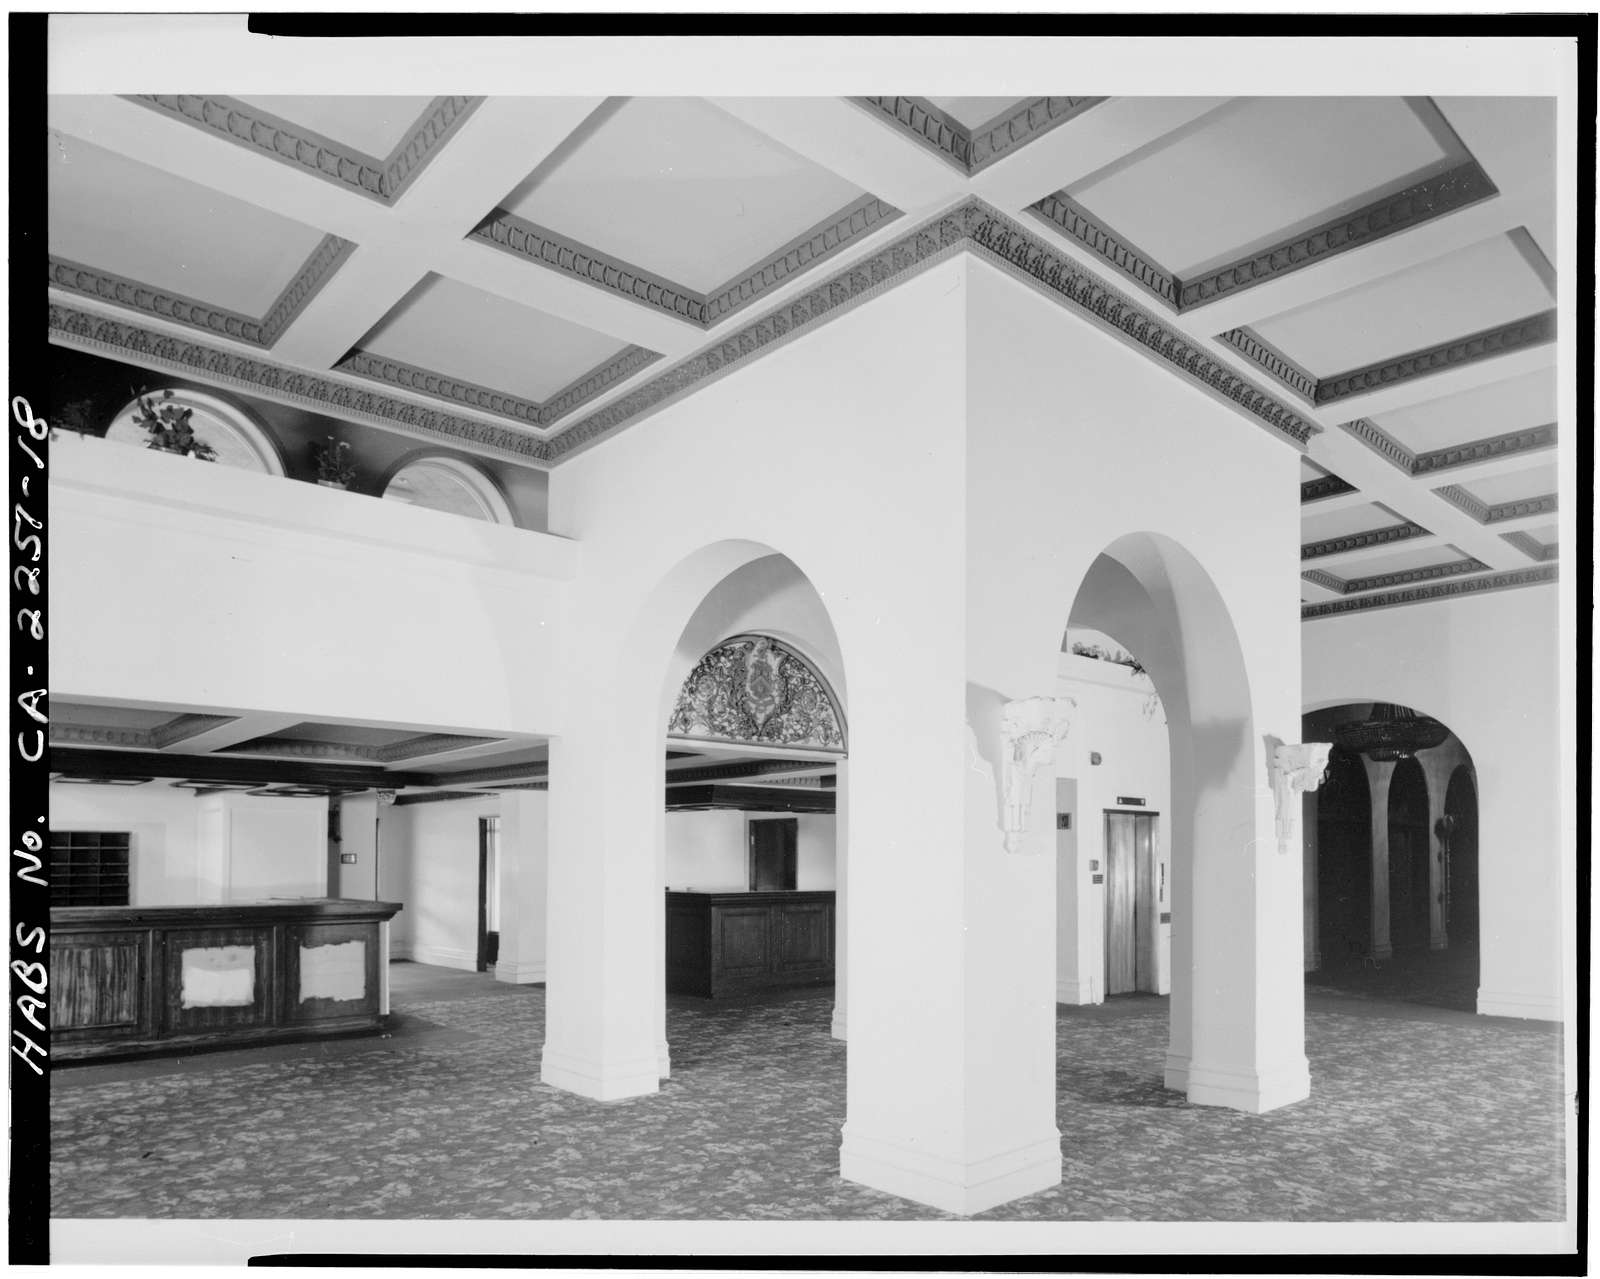 Huntington Hotel, 1401 South Oak Knoll Avenue, Pasadena, Los Angeles County, CA